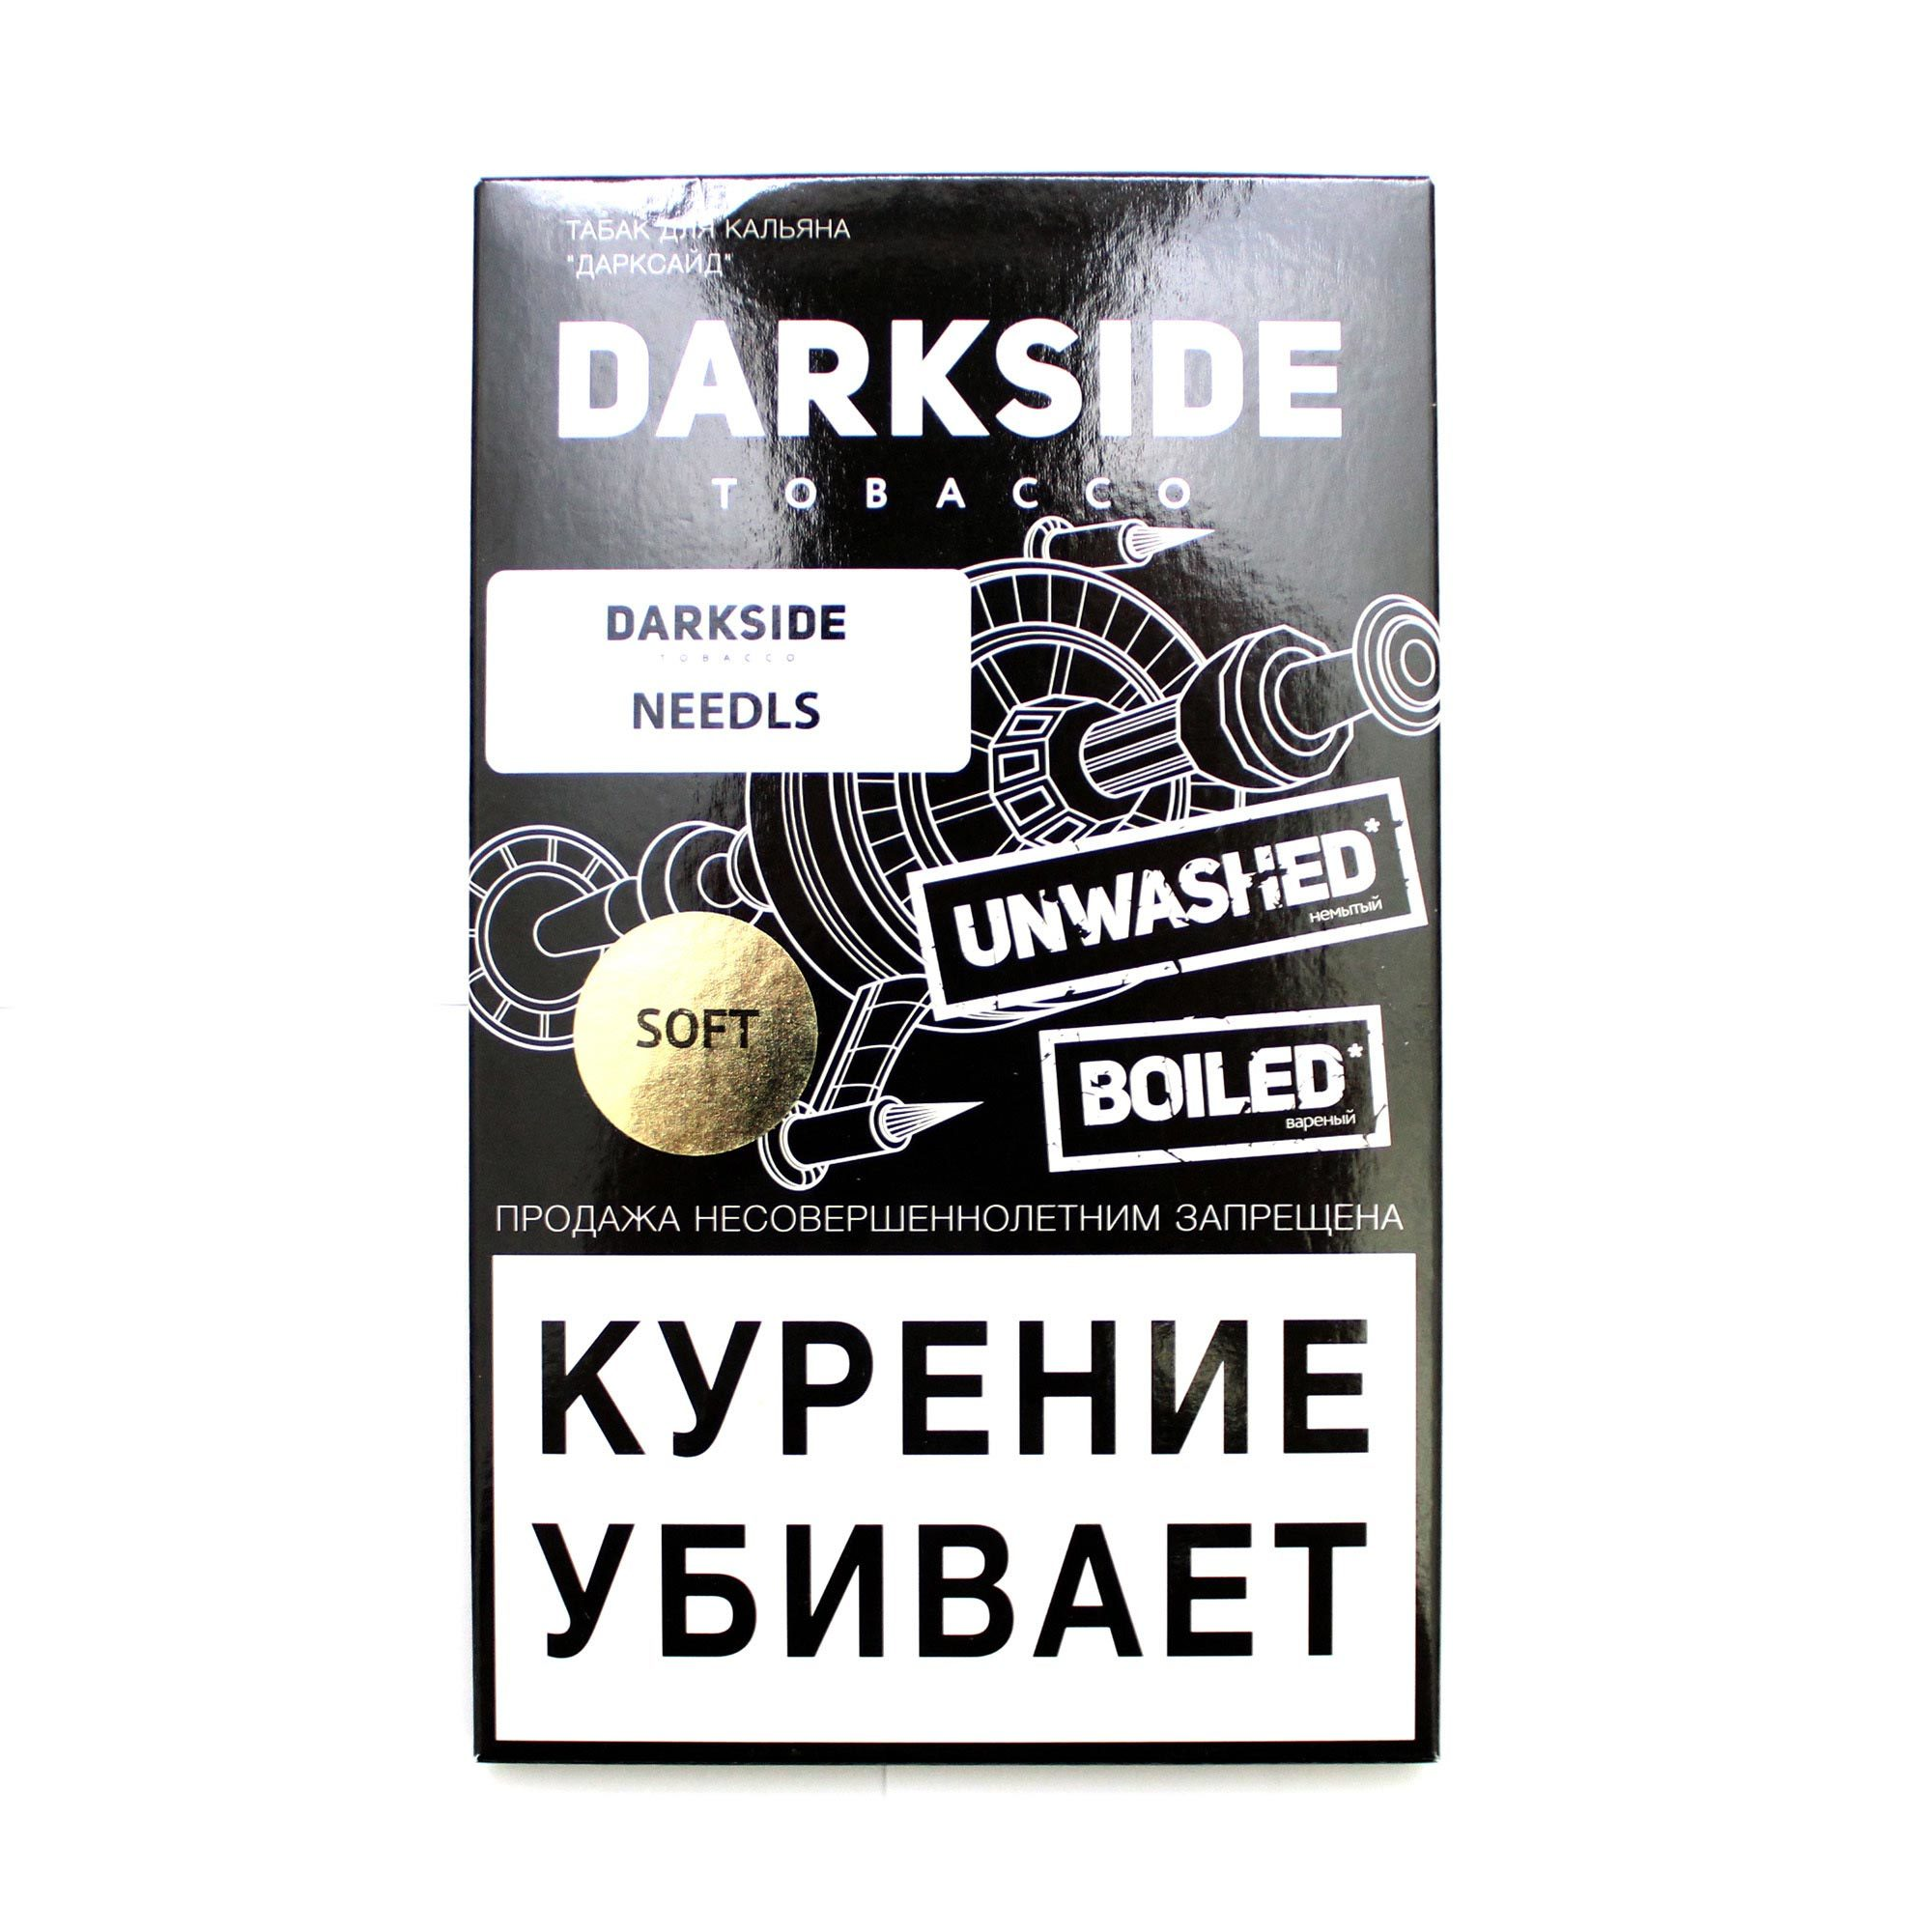 Табак для кальяна Dark Side Soft 100 гр. Needls